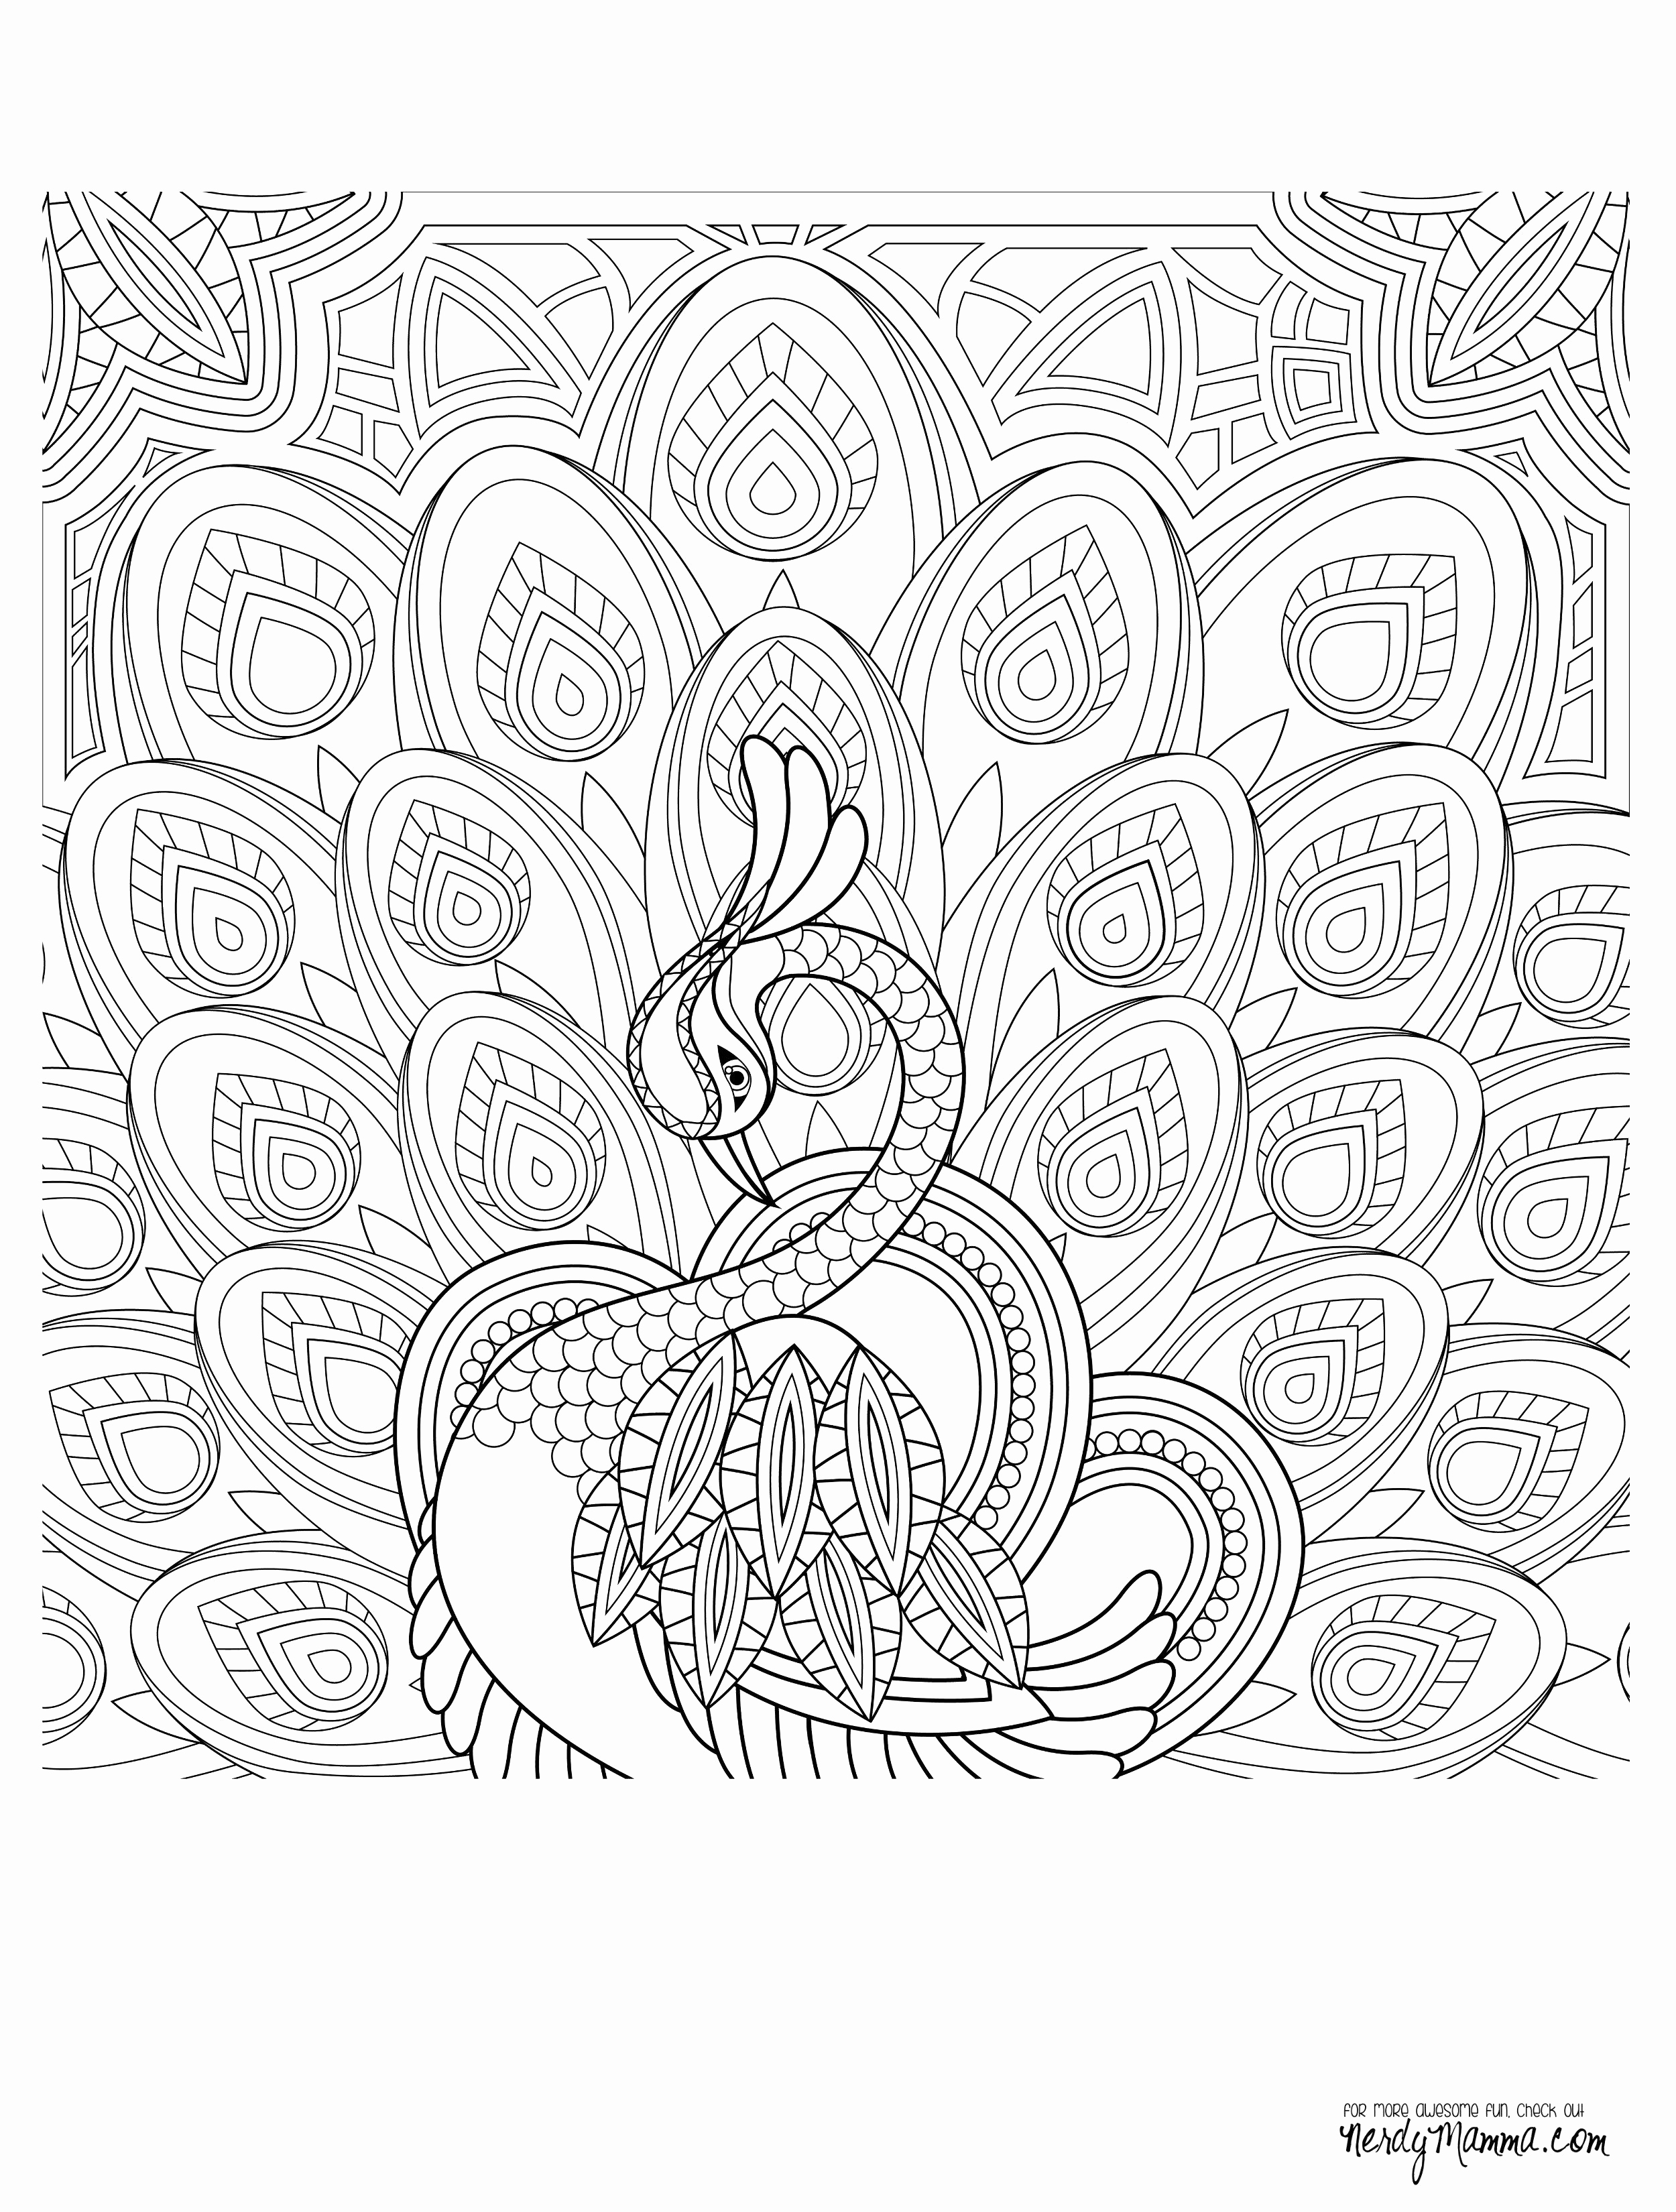 Christmas Wreath Coloring Pages Christmas Wreath Coloring Pages Luxury Coloring Book For Kids Free